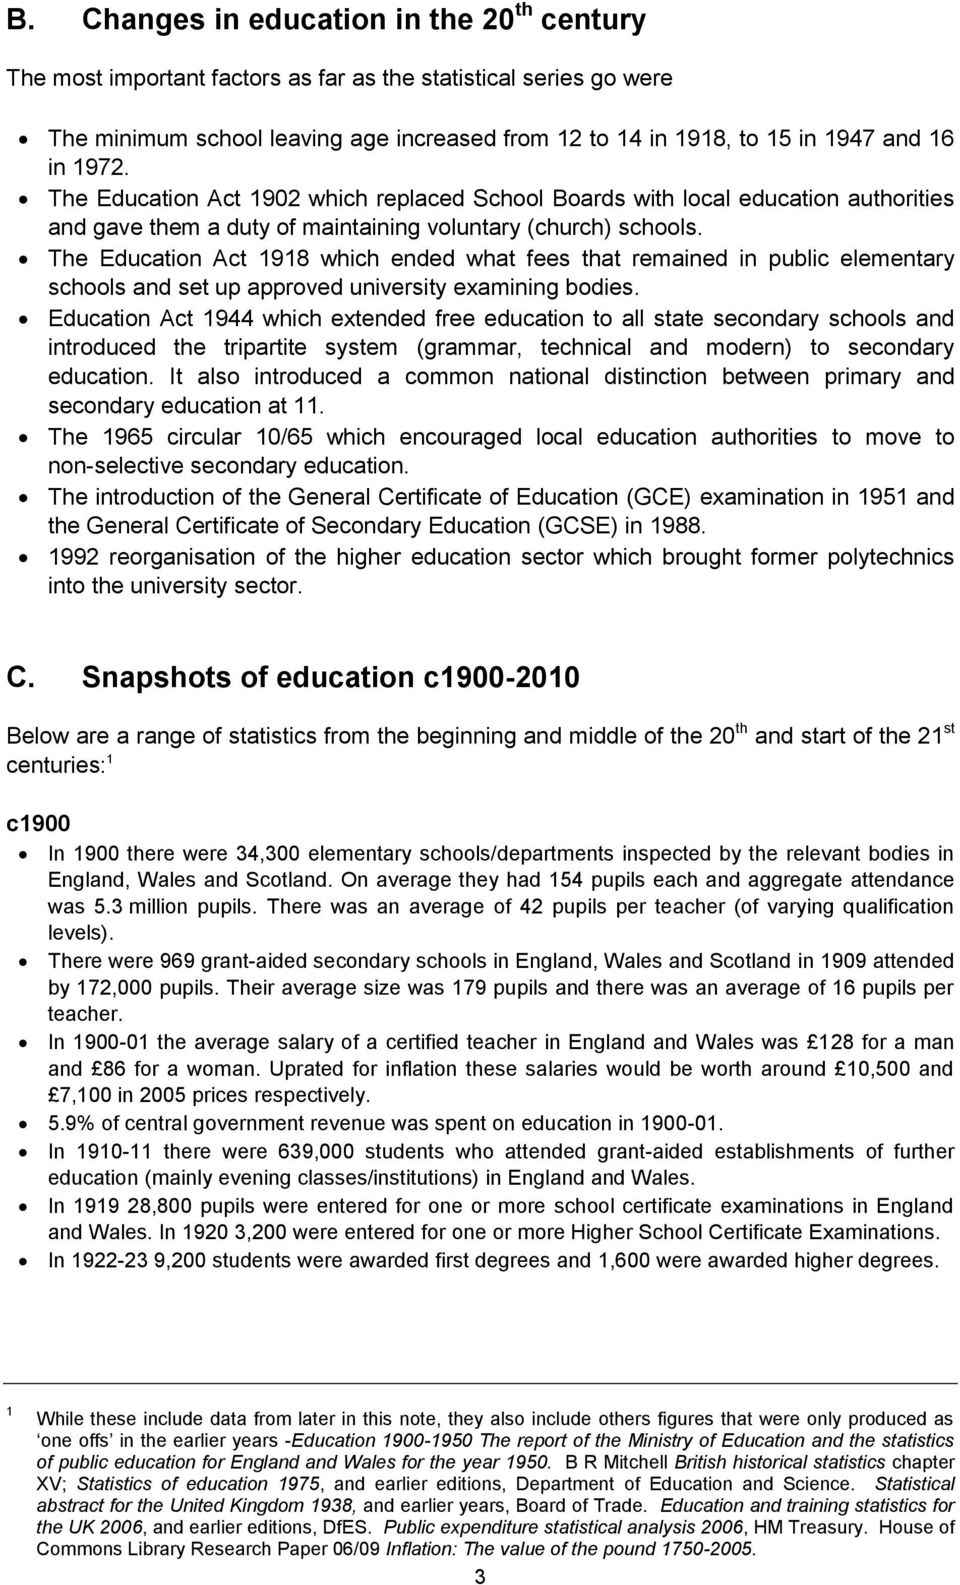 The Education Act 1918 which ended what fees that remained in public elementary schools and set up approved university examining bodies.